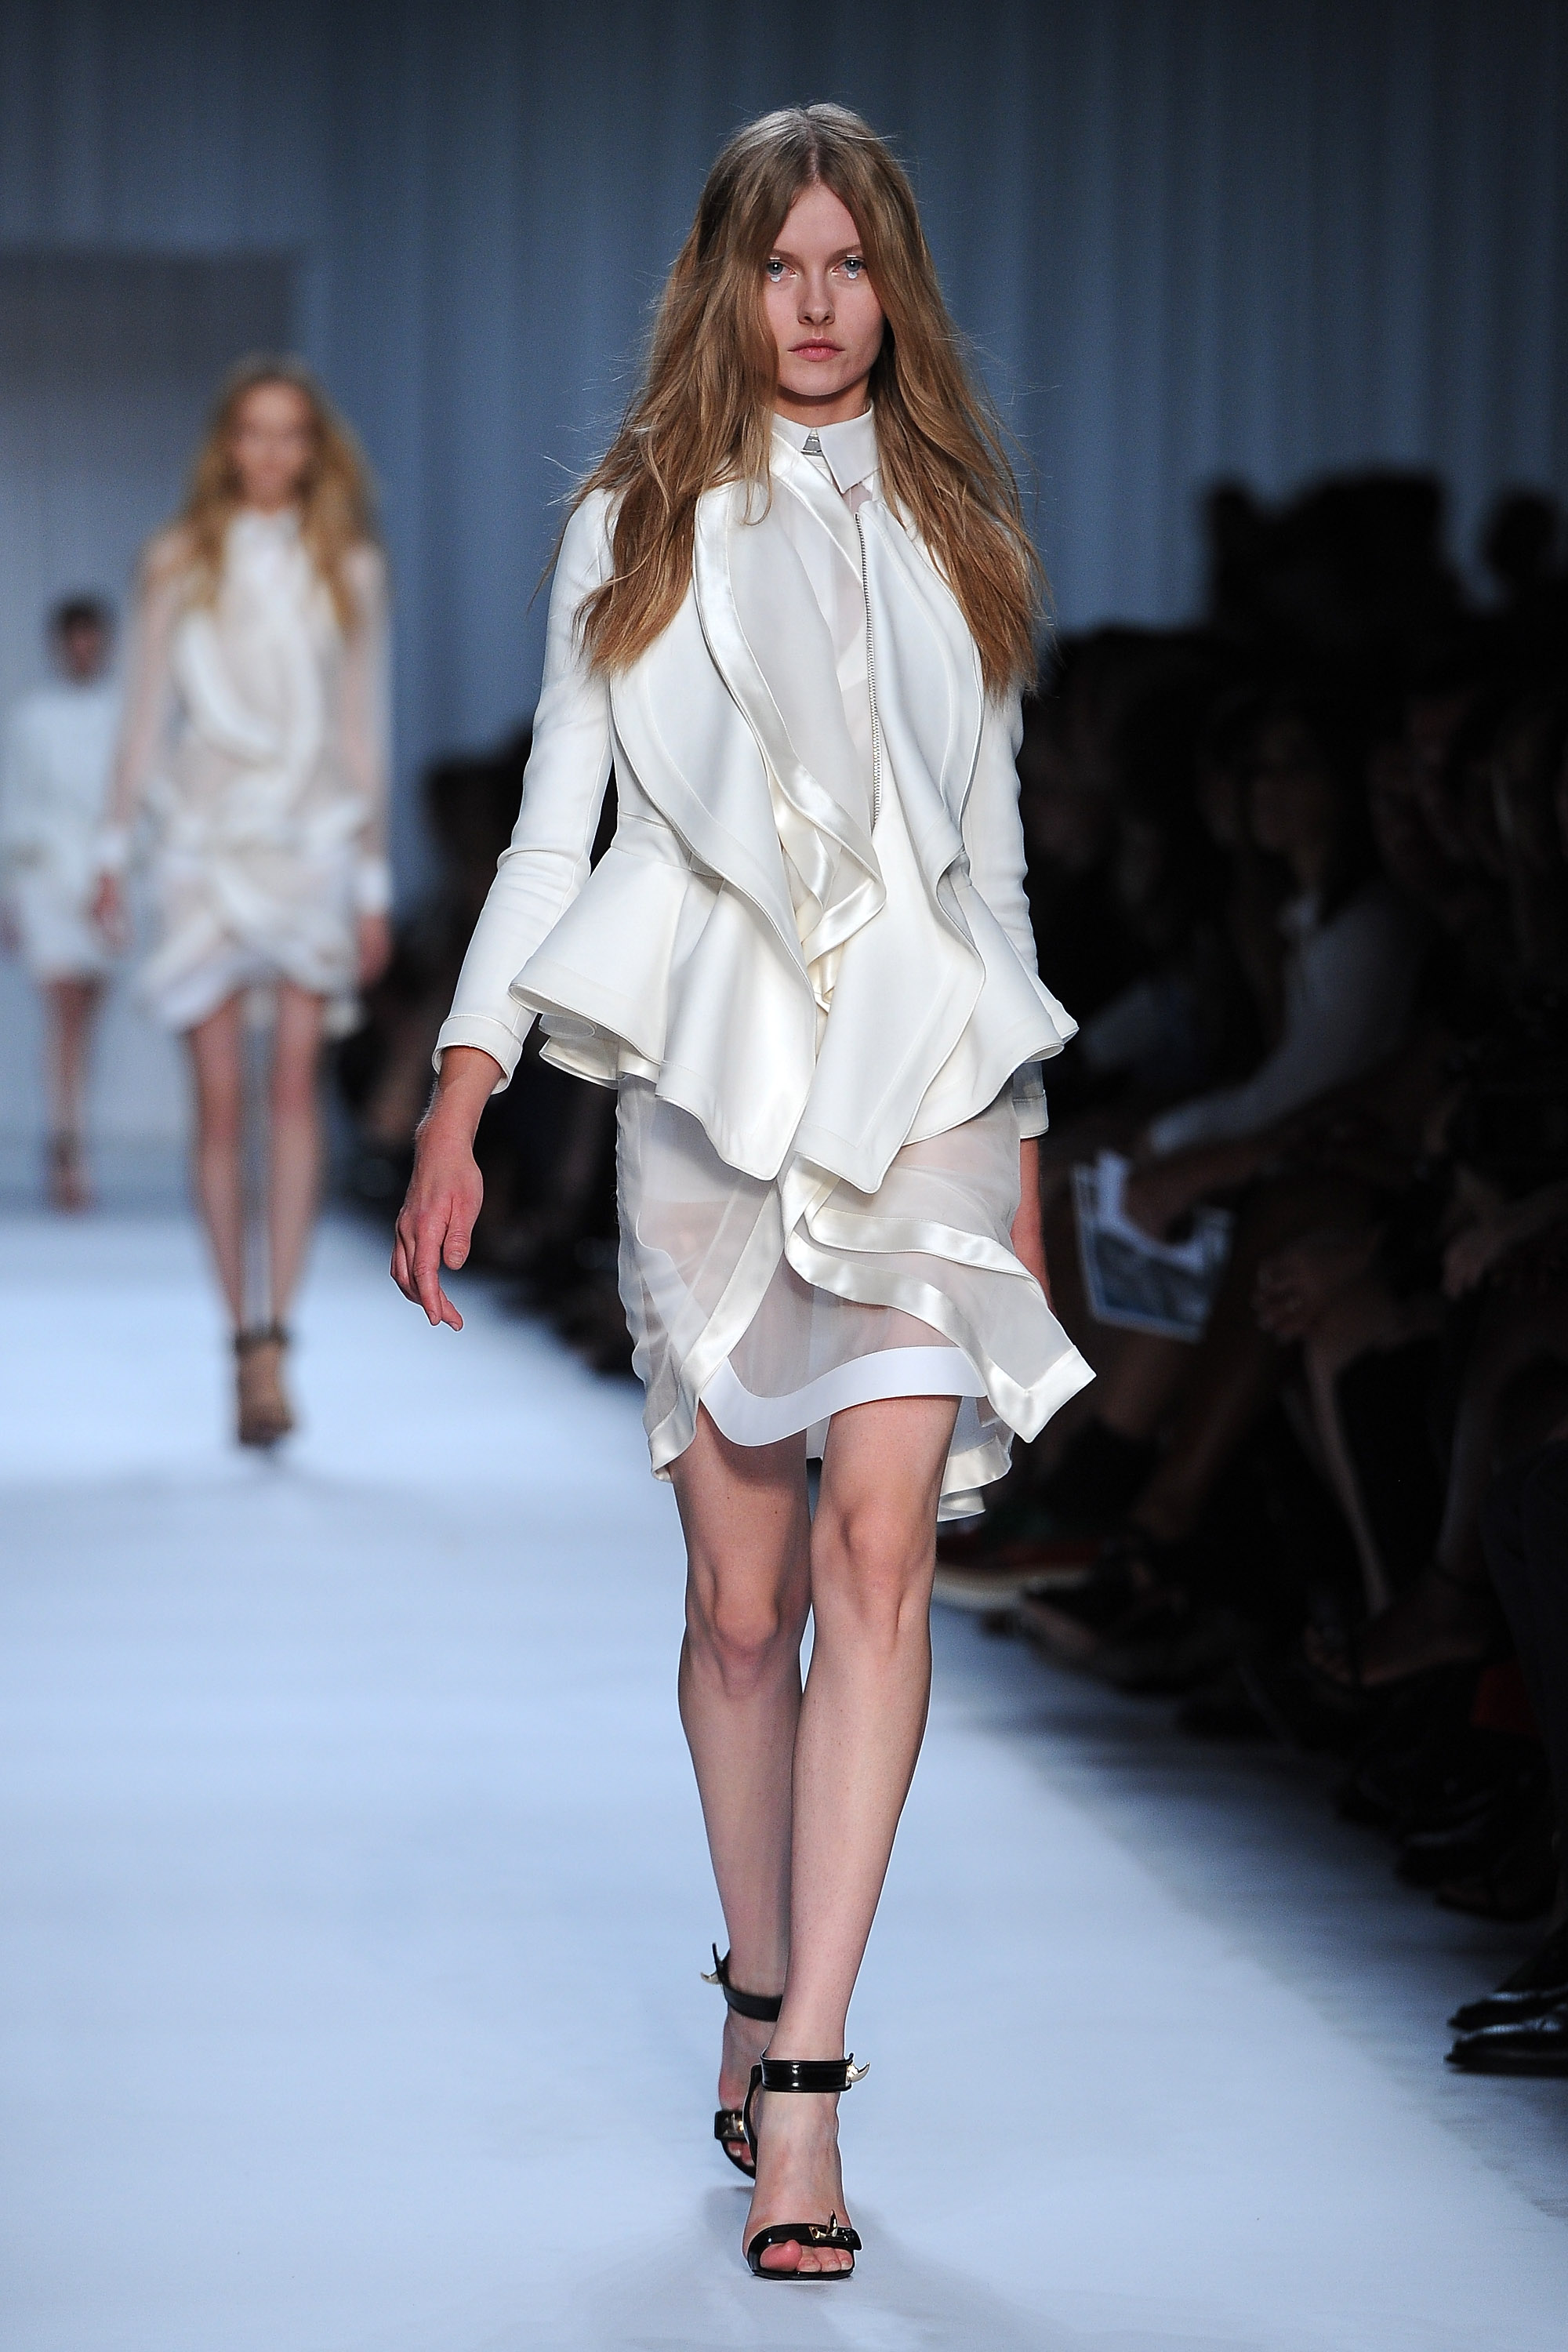 Review And Pictures Of Givenchy Runway Show At 2012 Spring Summer Paris Fashion Week Popsugar